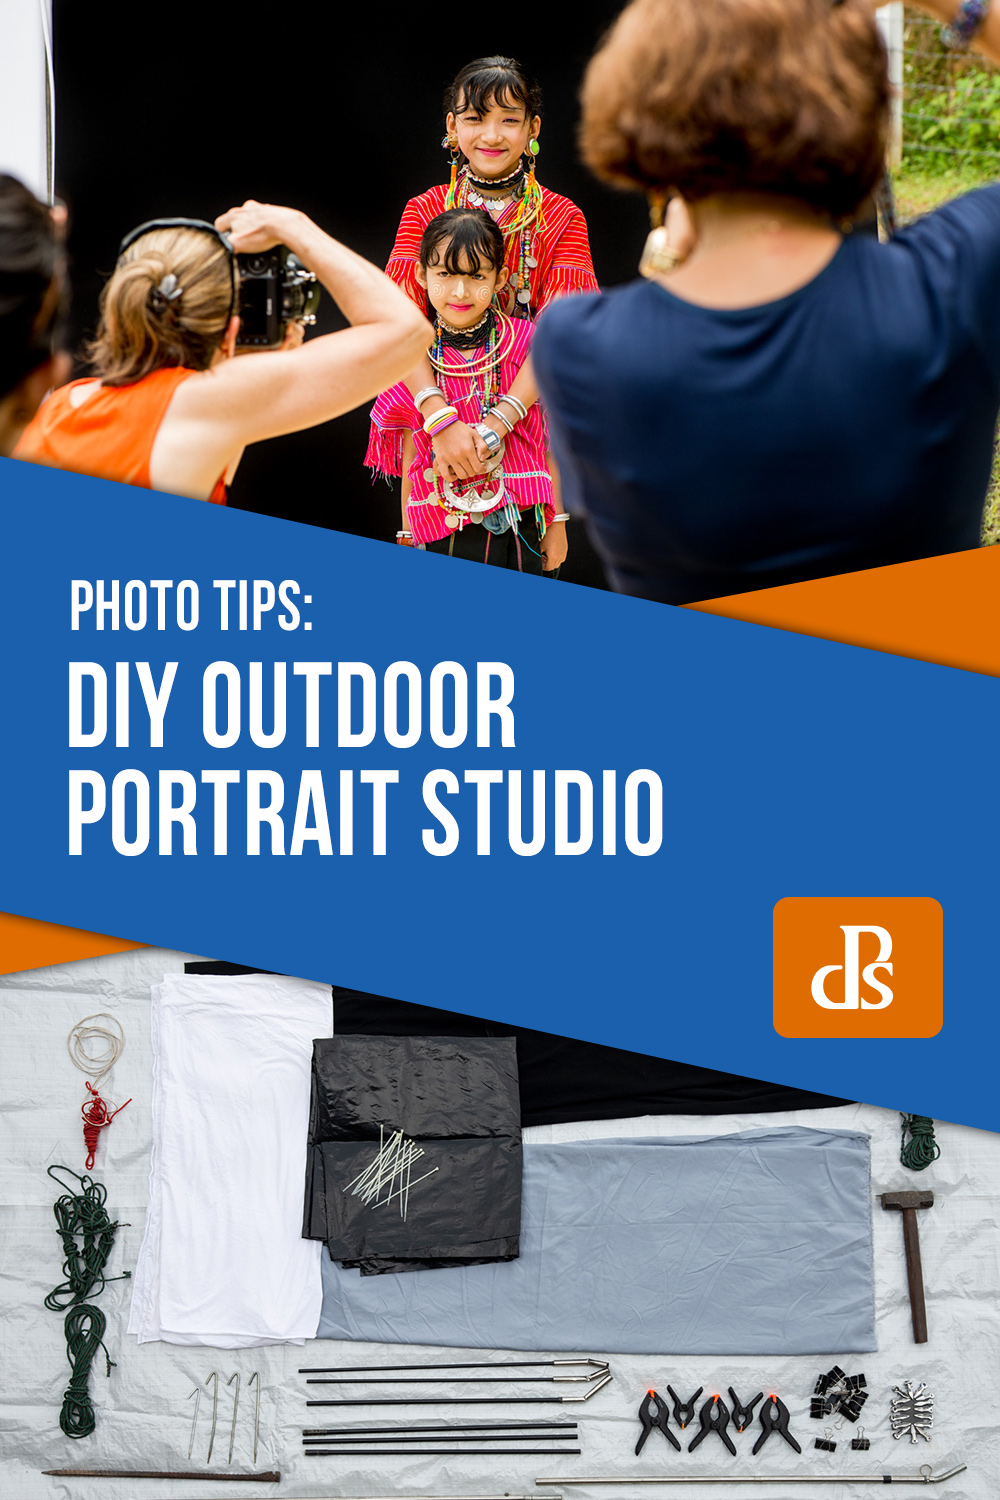 How To Use an Outdoor Studio for Natural Portraits